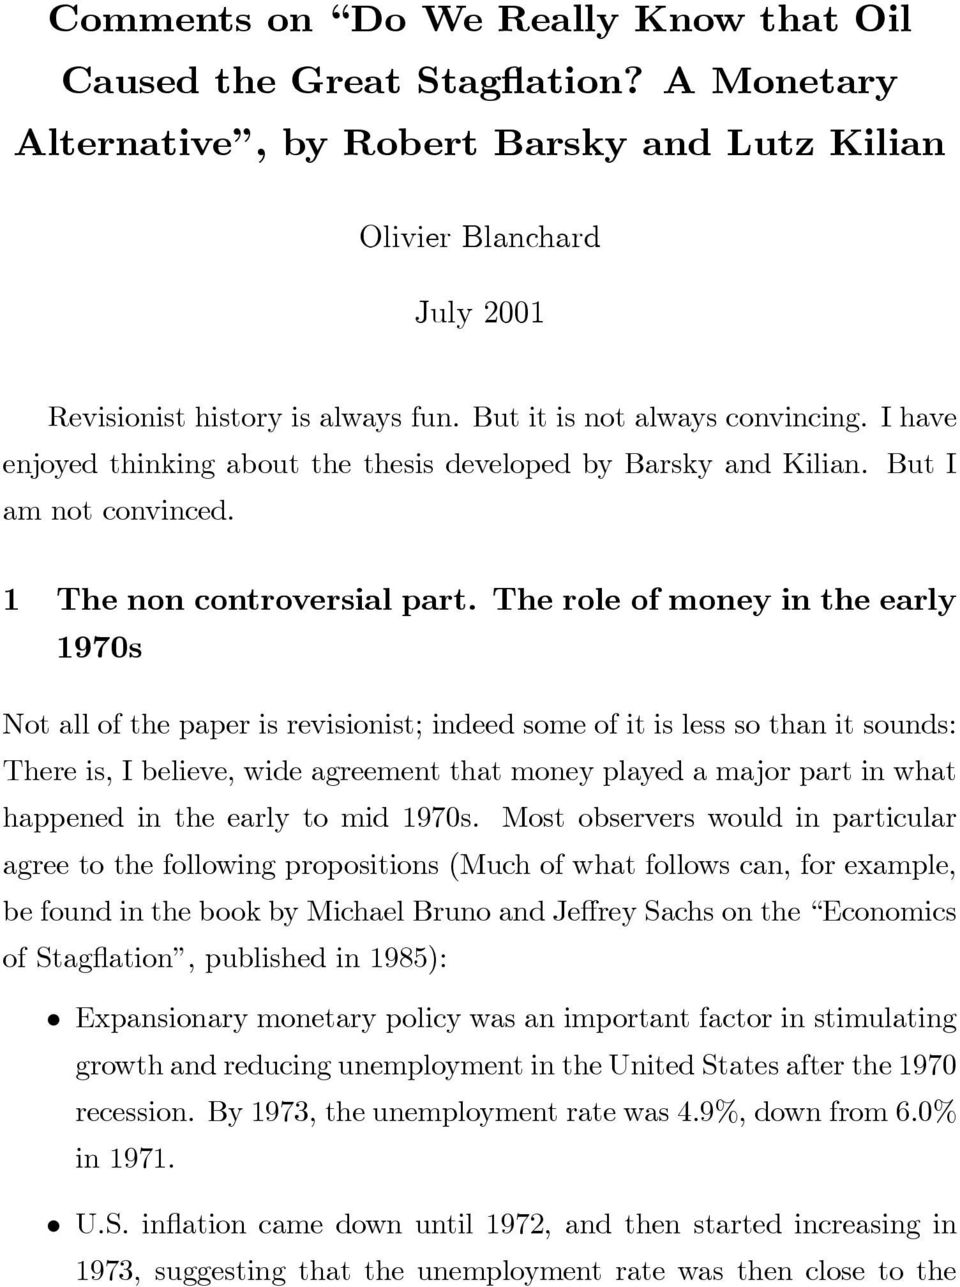 The role of money in the early 1970s Not all of the paper is revisionist; indeed some of it is less so than it sounds: There is, I believe, wide agreement that money played a major part in what